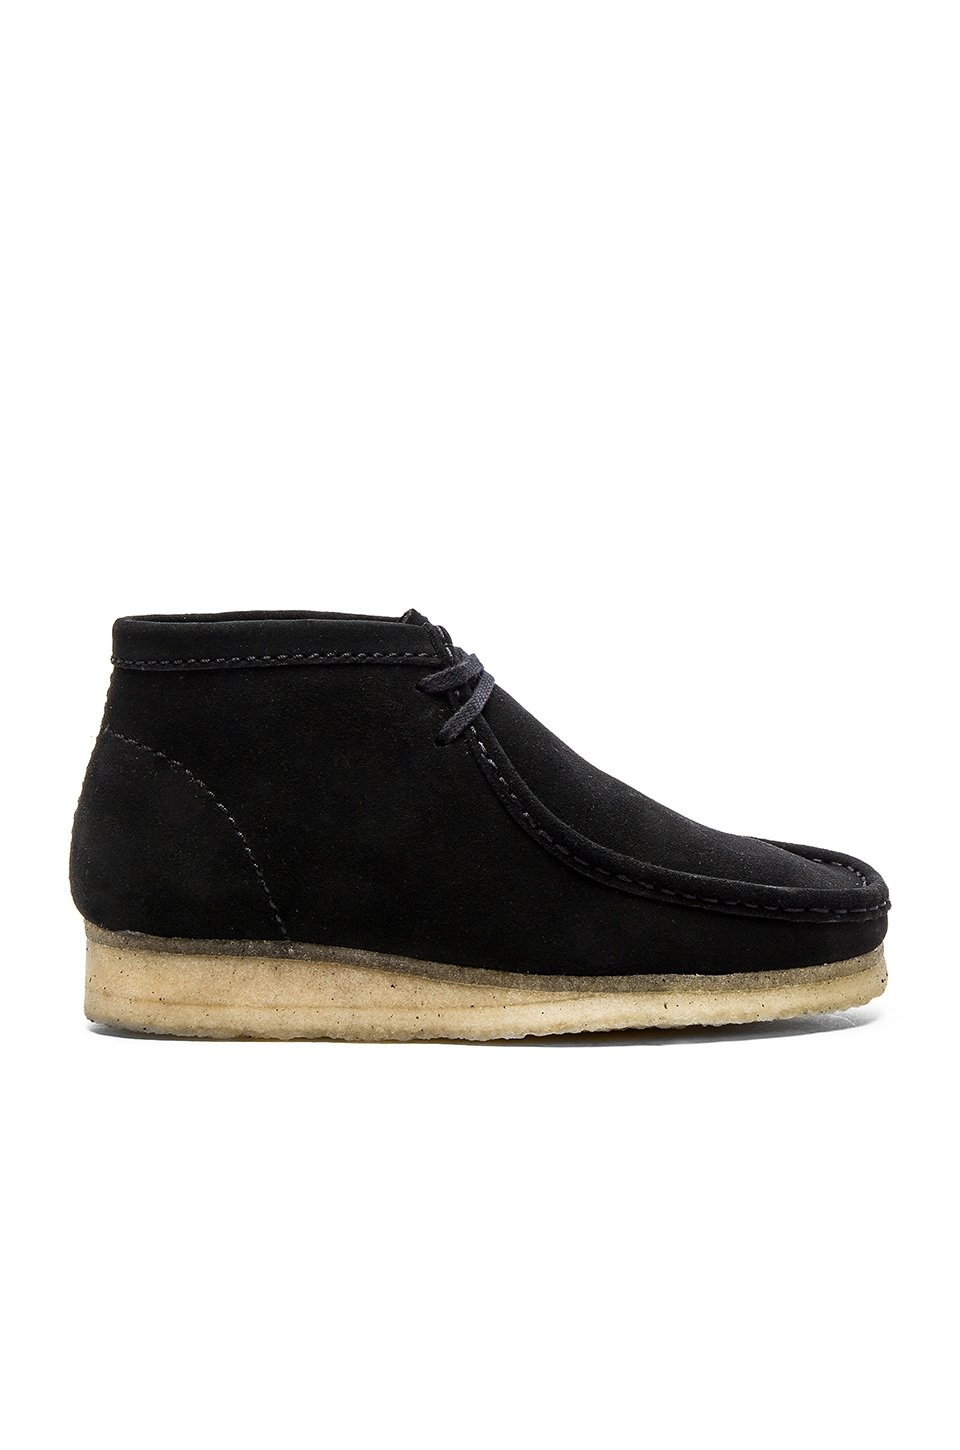 Originals Wallabee Boot by Clarks